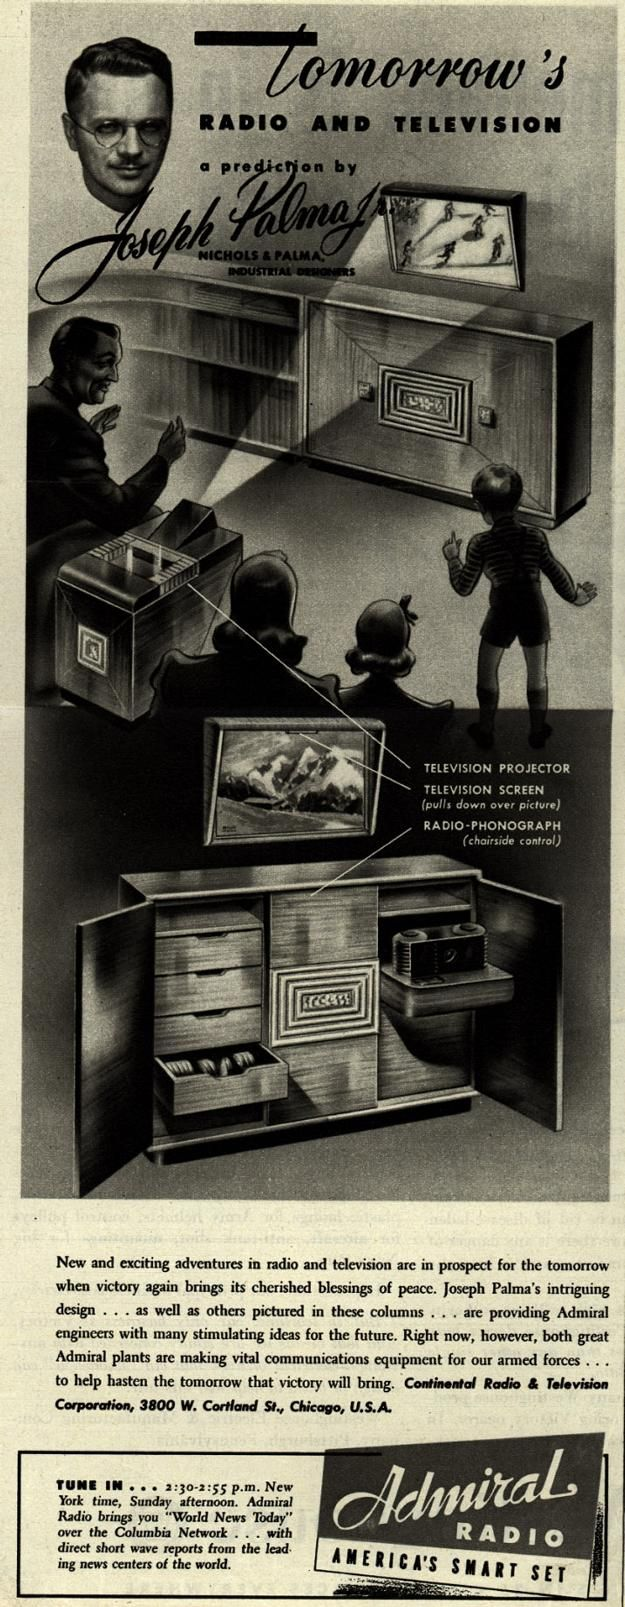 Tomorrow's Radio and Television . From Duke Digital Collections. Collection: Ad*Access